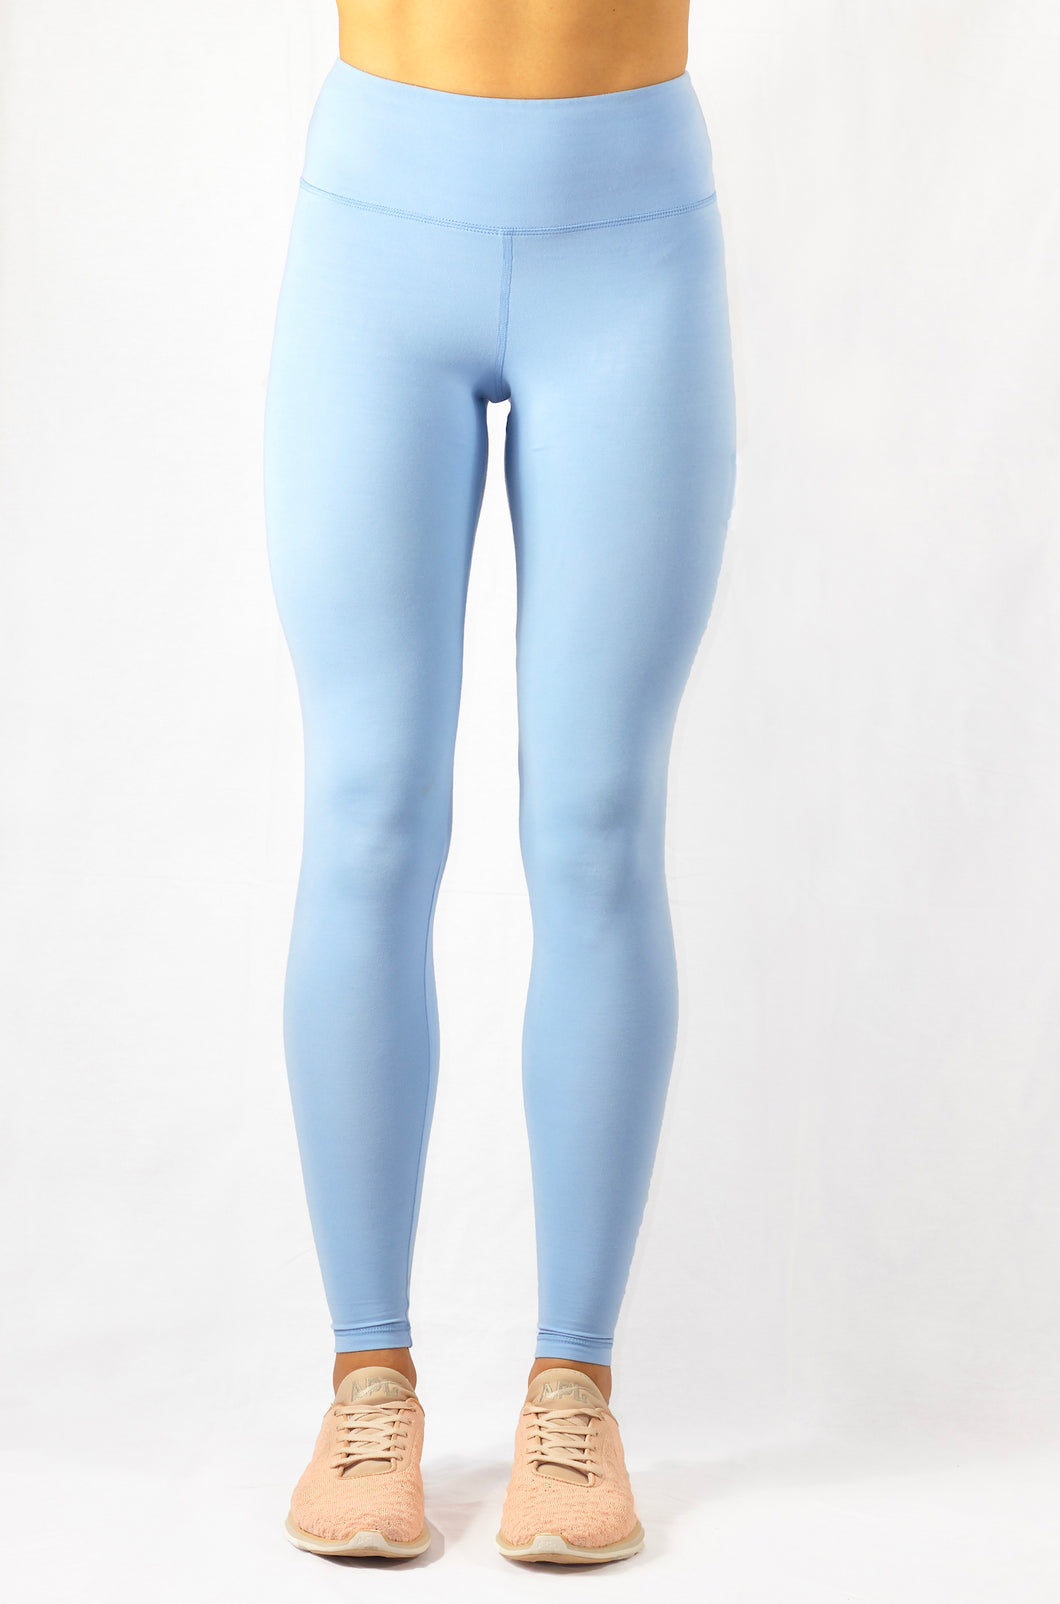 high-rise bright blue natural yoga leggings front view